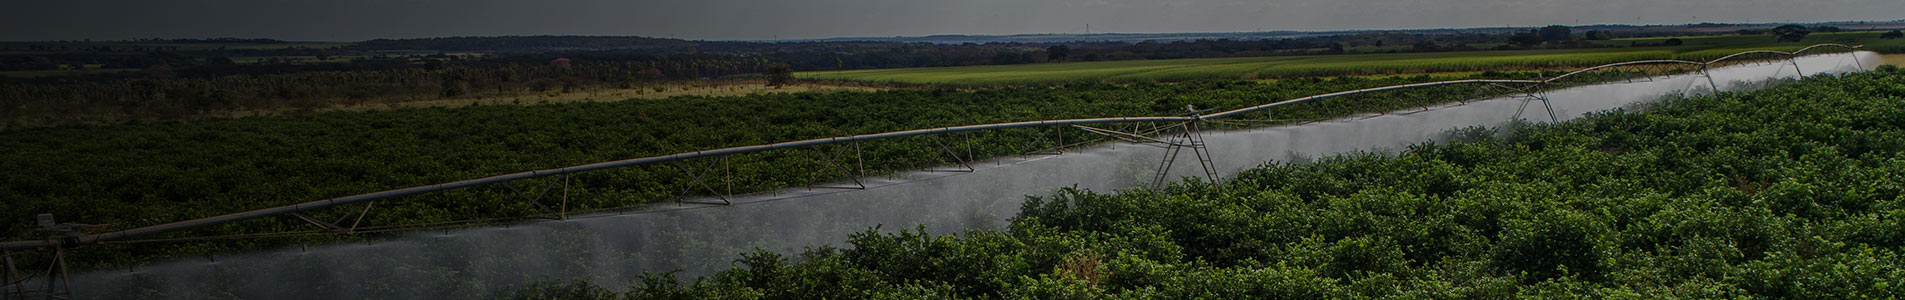 valley rice irrigation solutions